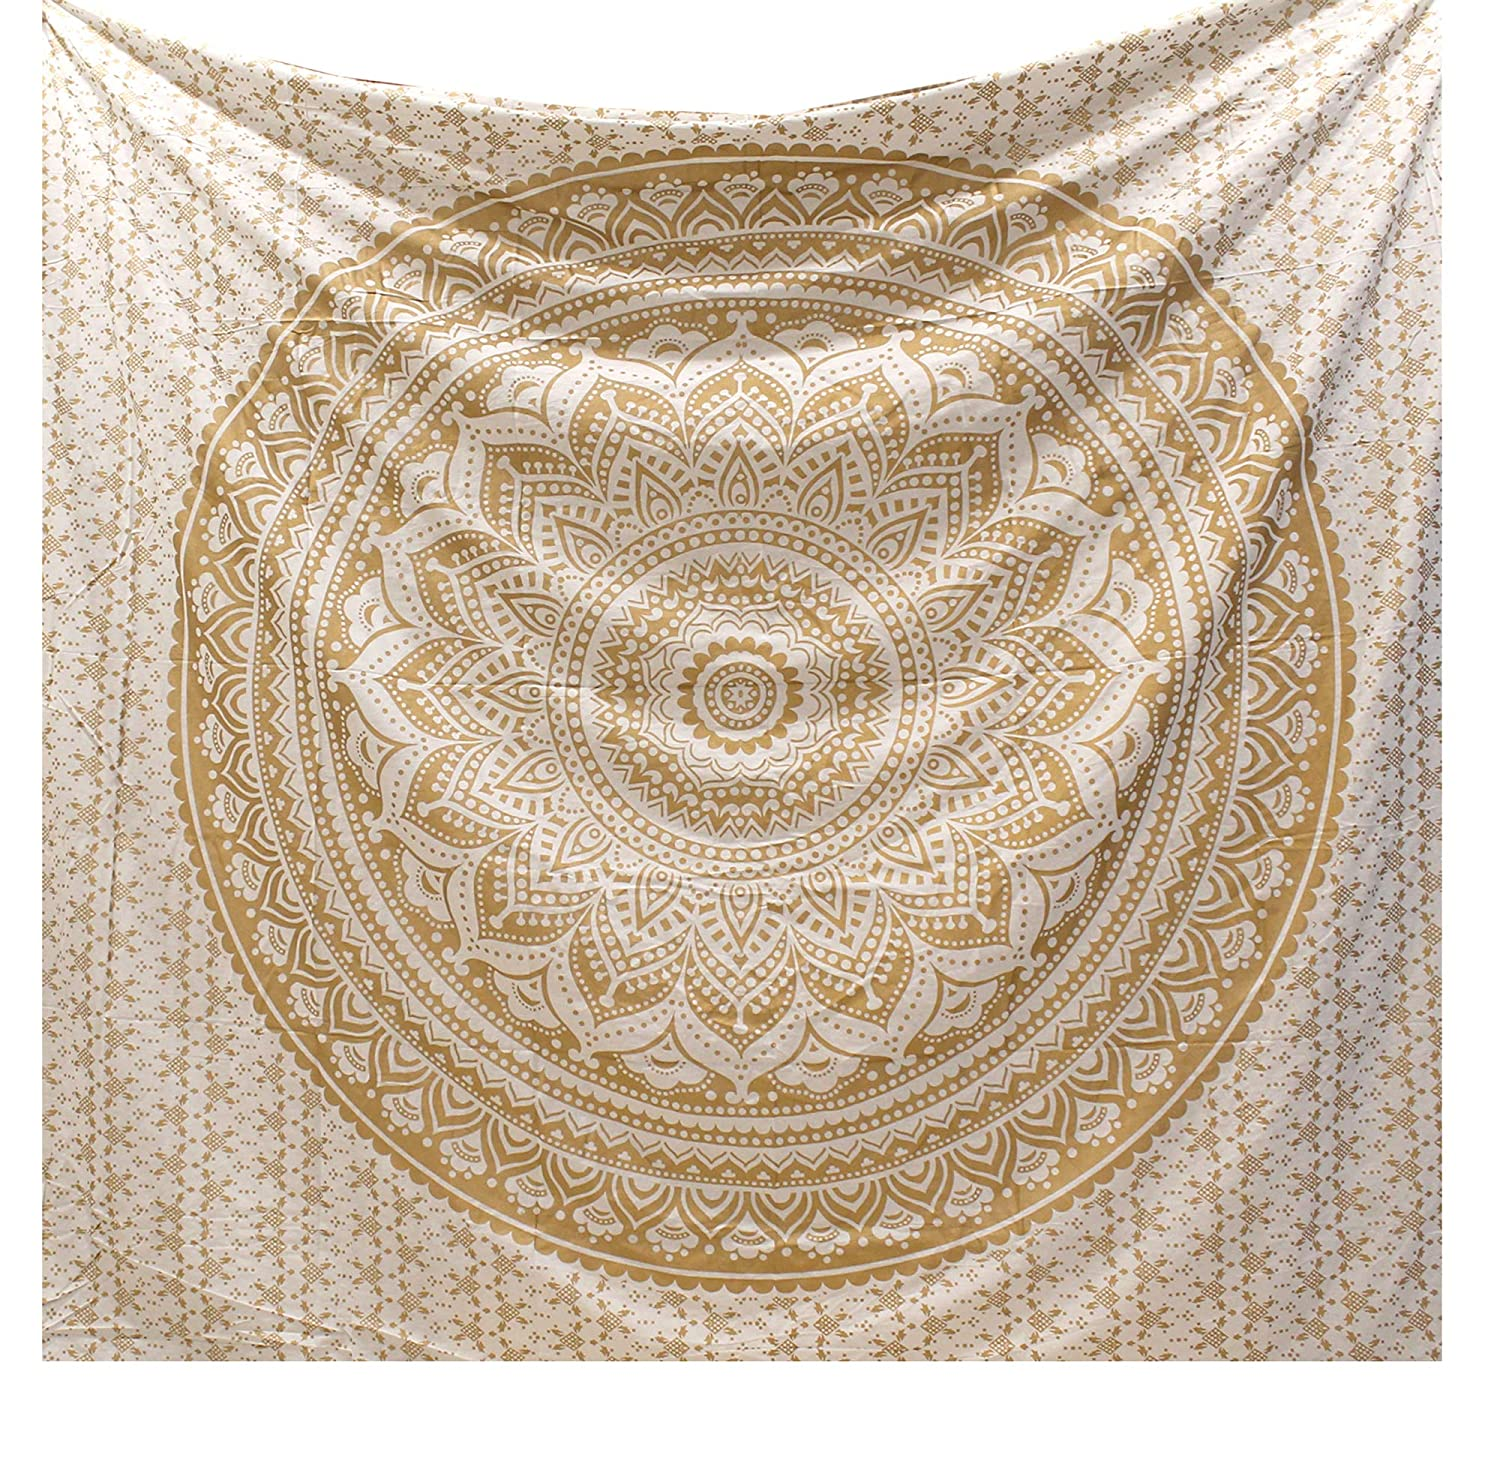 Raajsee Glittering Gold Mandala Tapestry Wall Hanging - Boho Bedding Bohemian Indian Cotton Hippie Tapestries Large - Dorm Decor White Golden Queen Bedspread - Hippy Elephant Meditation Yoga Mat Beach Blanket Rugs 220x210 cms- Christmas Gift j.p.fashions